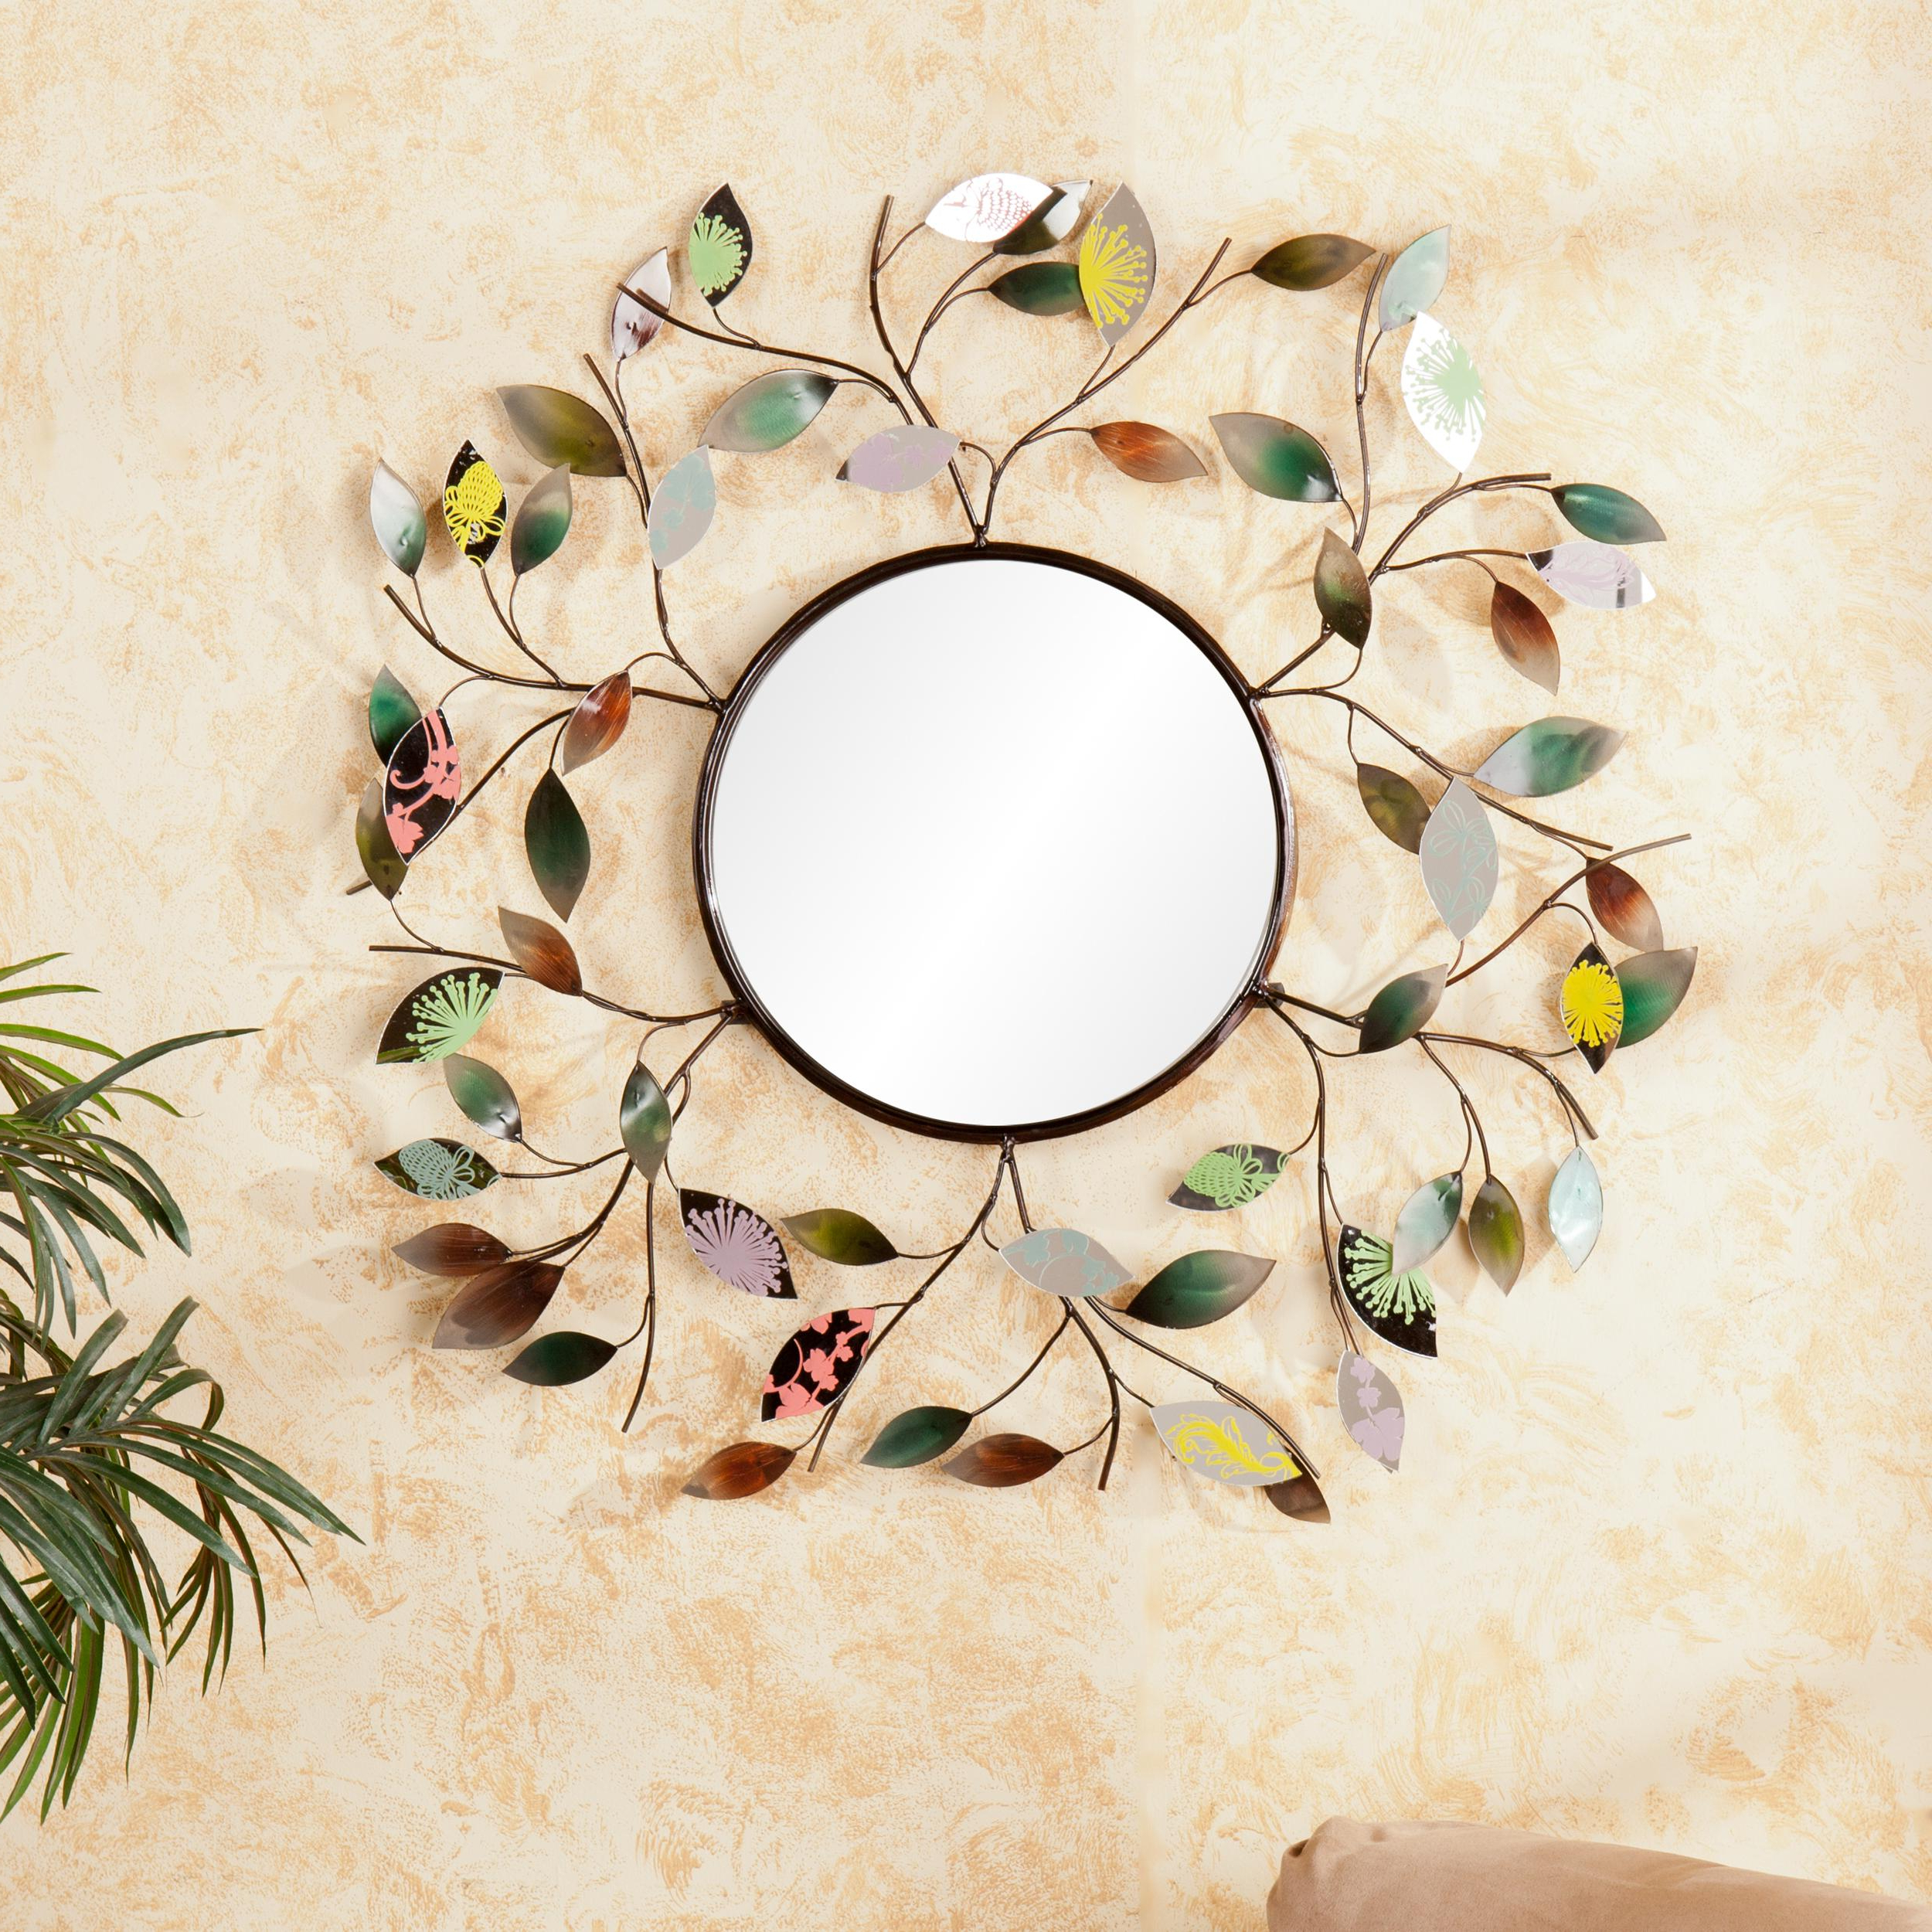 2020 Decorative Metallic Leaf Wall Mirror – 3D Leaf Hanging Art – Multicolored  Eclectic Style With Decorative Cheap Wall Mirrors (View 3 of 20)